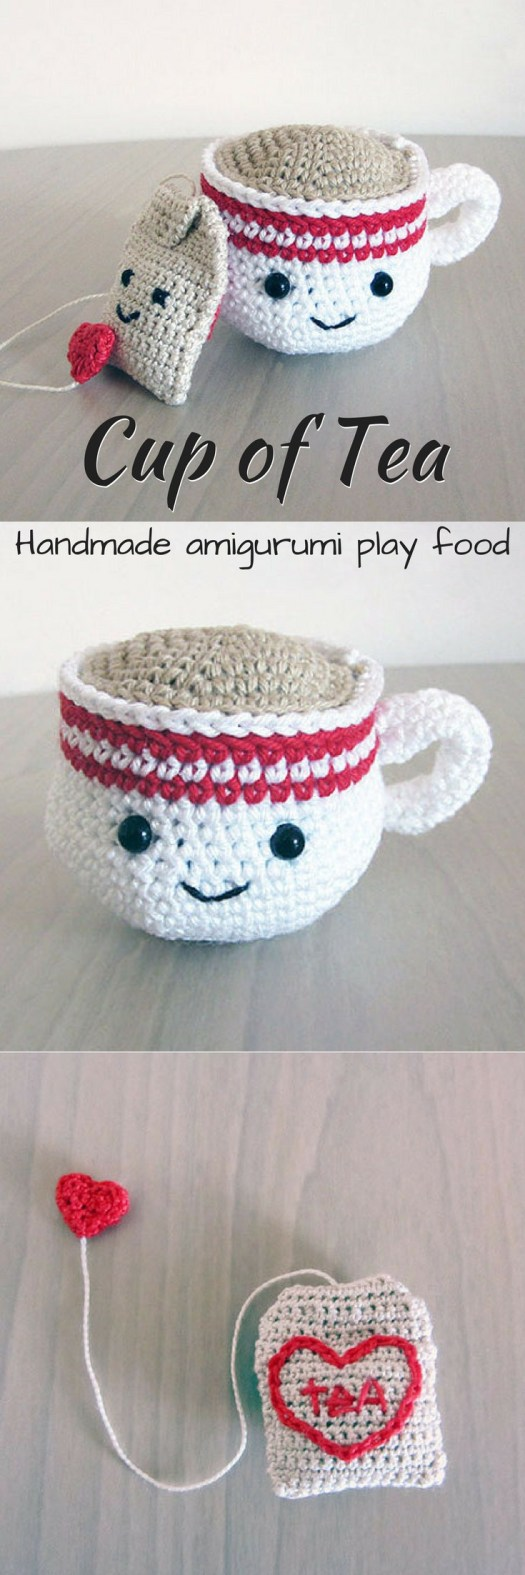 Eek! What an adorable little cup of tea with a tea bag crocheted play food amigurumi! This would be a perfect handmade gift for a toddler! So adorable! This link is for an Etsy listing to the finished product.